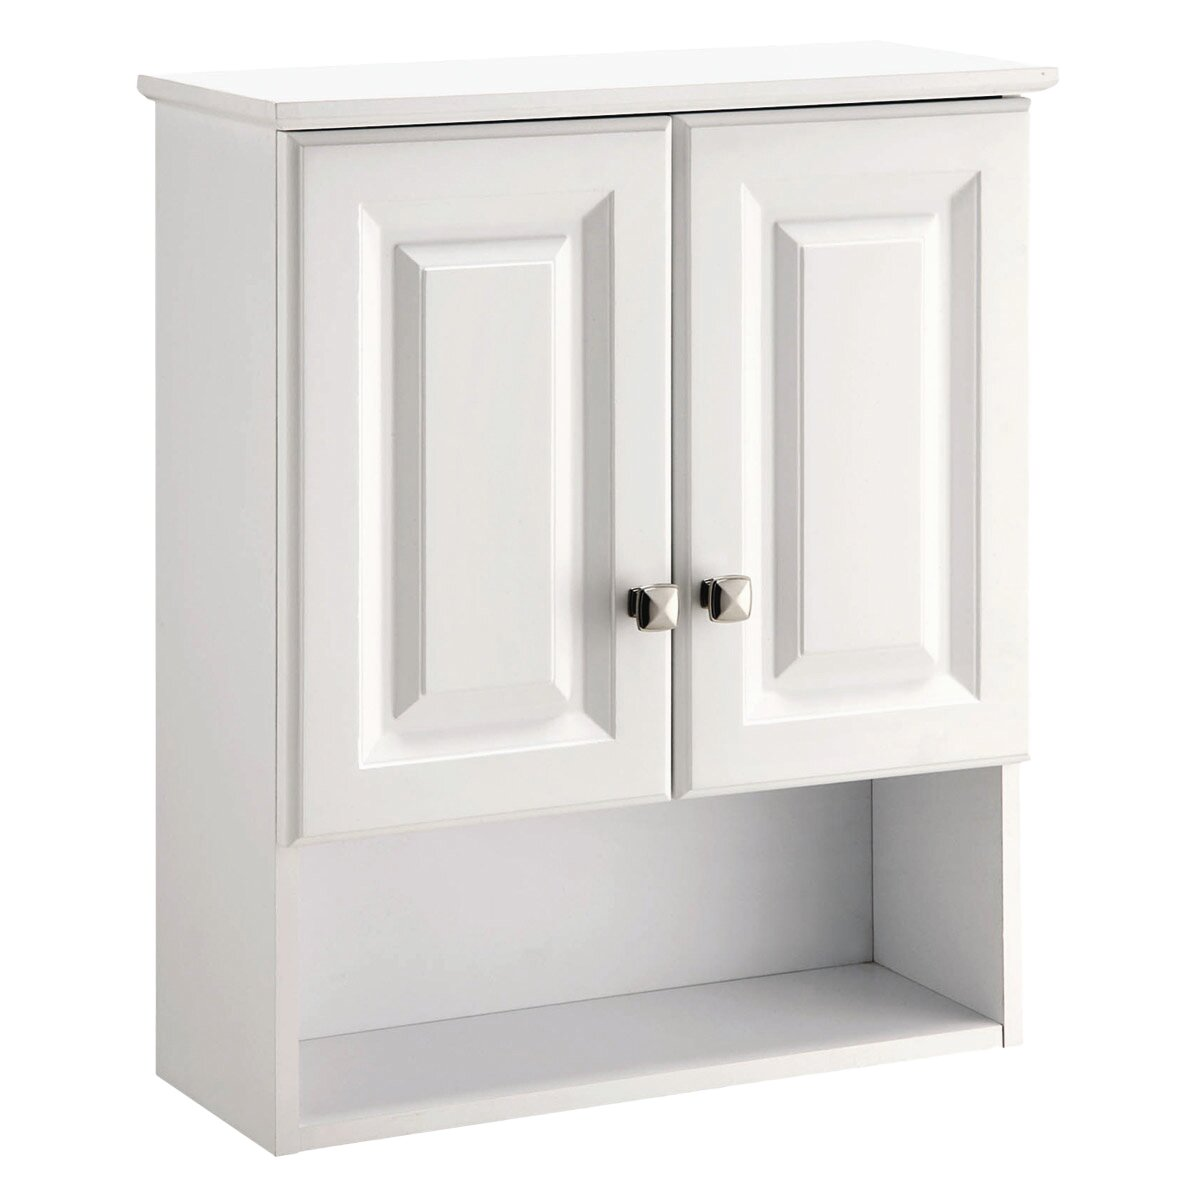 15 Inch Deep Wall Cabinets Wall Mounted Bathroom Cabinets Youll Love Wayfair